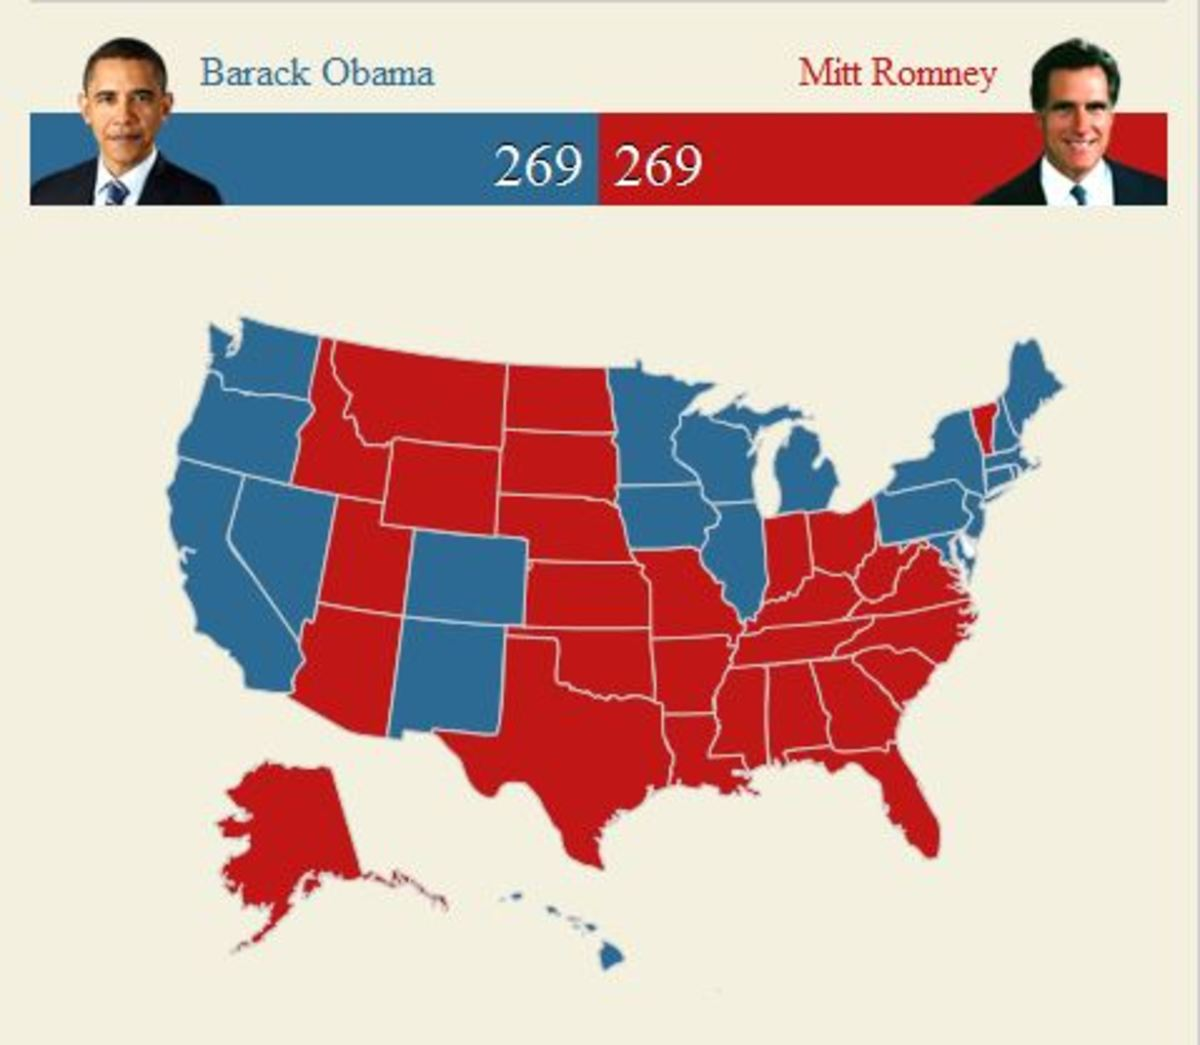 an analysis of rekindling the electoral college debate in the united states Presidential election in california, 2016 from ballotpedia jump to: navigation post-debate analysis democrats april 14, 2016 (cnn) electoral college the president of the united states is not elected by popular vote but rather by electors in the electoral college.